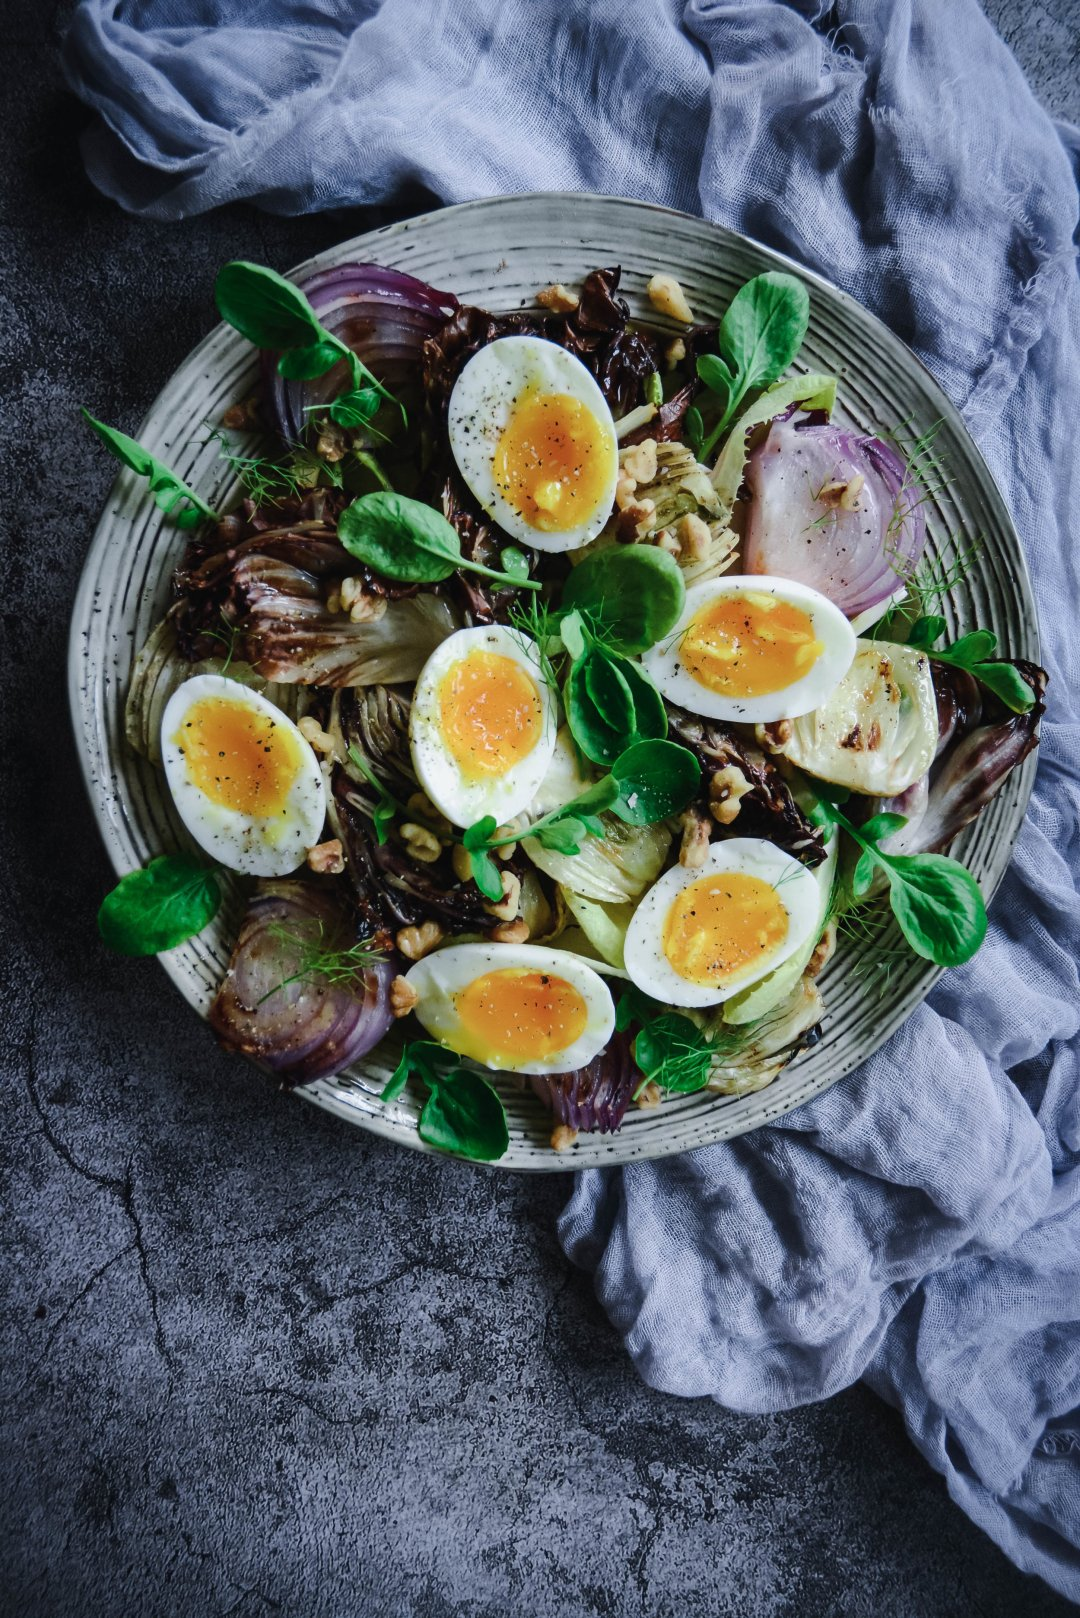 If you're looking for a delicious salad without the lettuce, check out this grilled radicchio and fennel salad with endives, soft boiled eggs, toasted walnuts and a tangy vinaigrette. It's simple yet delicious! #paleo #whole30 #vegetarian #calmeats #salad #radicchio #fennel #softboiledeggs #endive #whole30salad #paleosalad #saladrecipe #summerrecipe